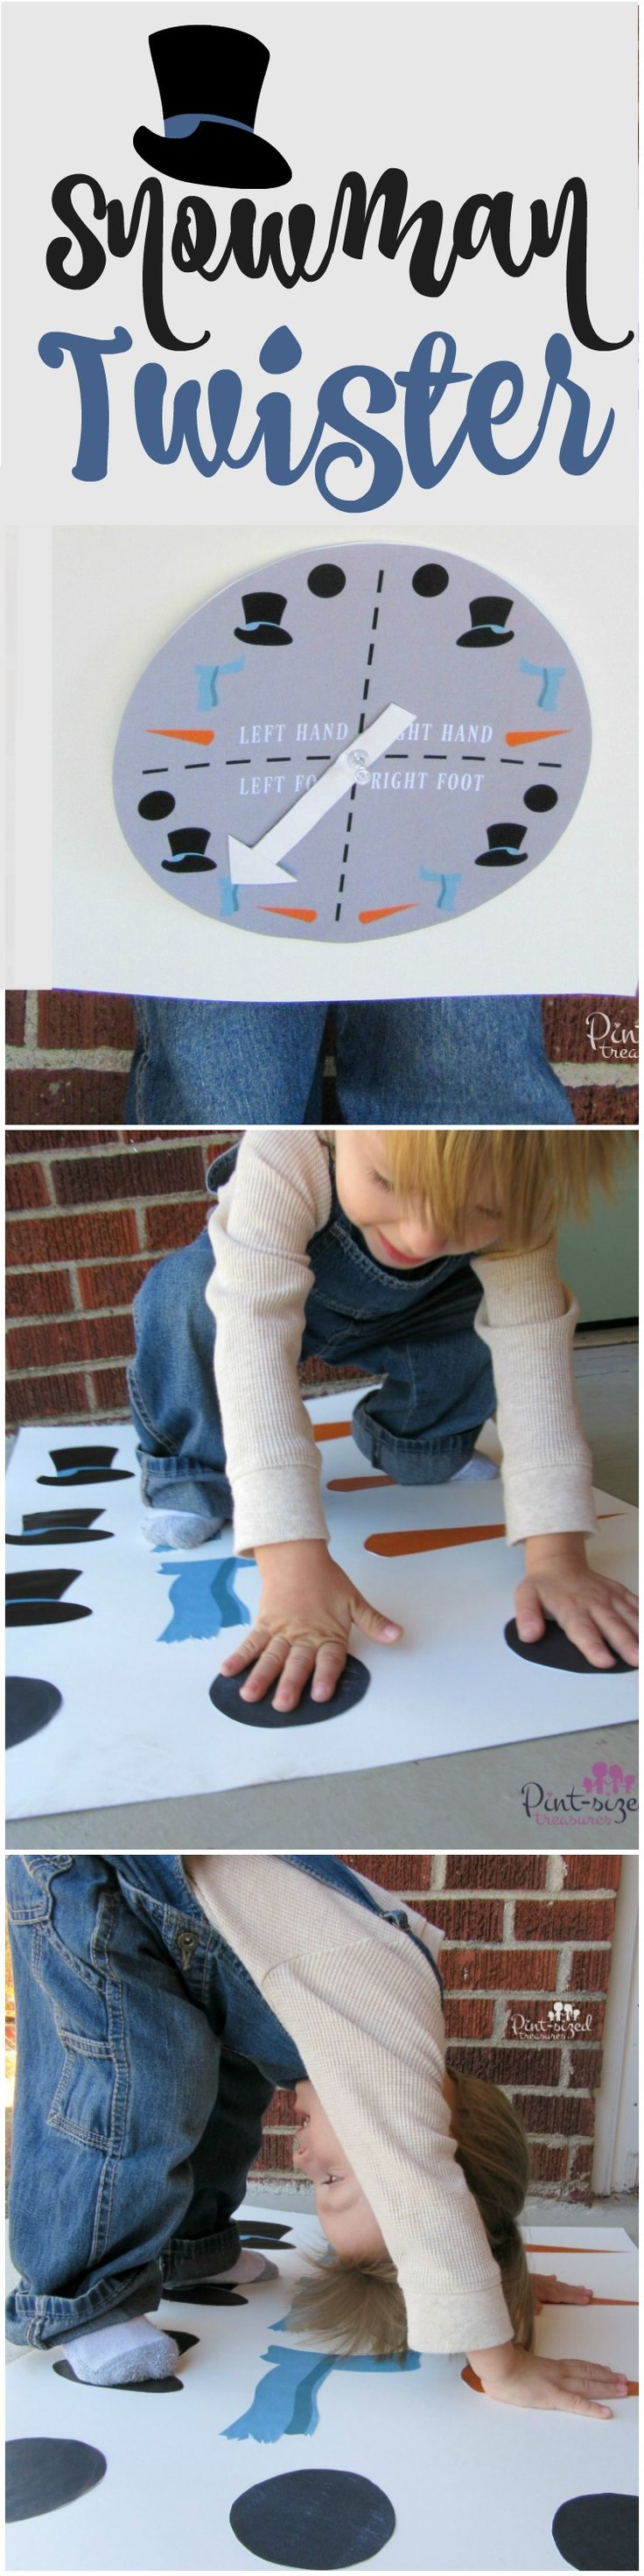 Take traditional Twister to a whole new level with Snowman accessories! Preschoolers love this fun game that teaches hand-eye coordination, sequences, and sportsmanship! So many ways to use this fun game and free printable set to help preschoolers and elementary aged children learn basic and foundational concepts! Get ready to giggle, smile and learn with Snowman Twister!